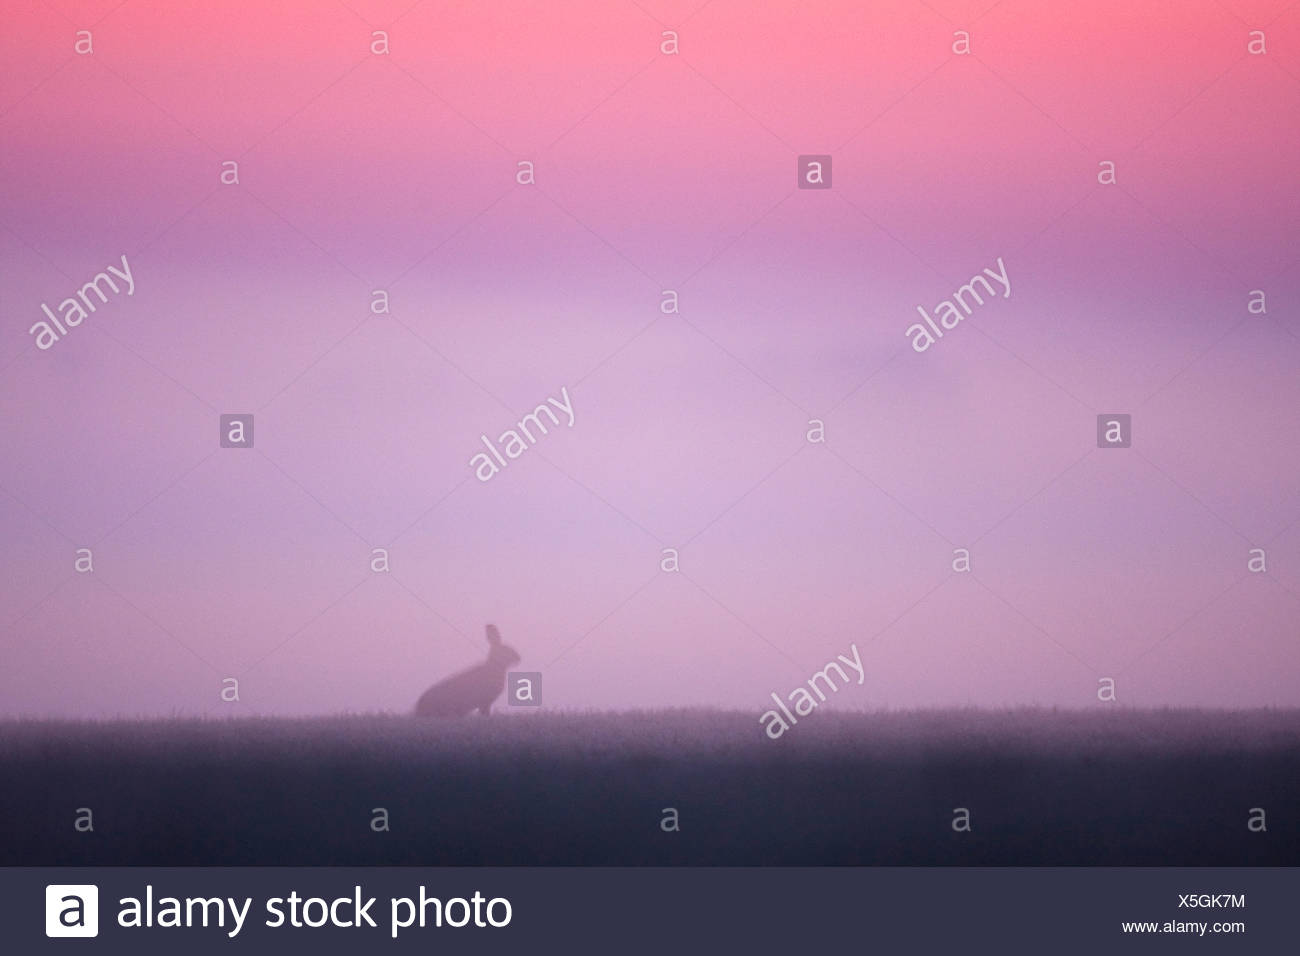 Hare before sun rise against pink sky. - Stock Image